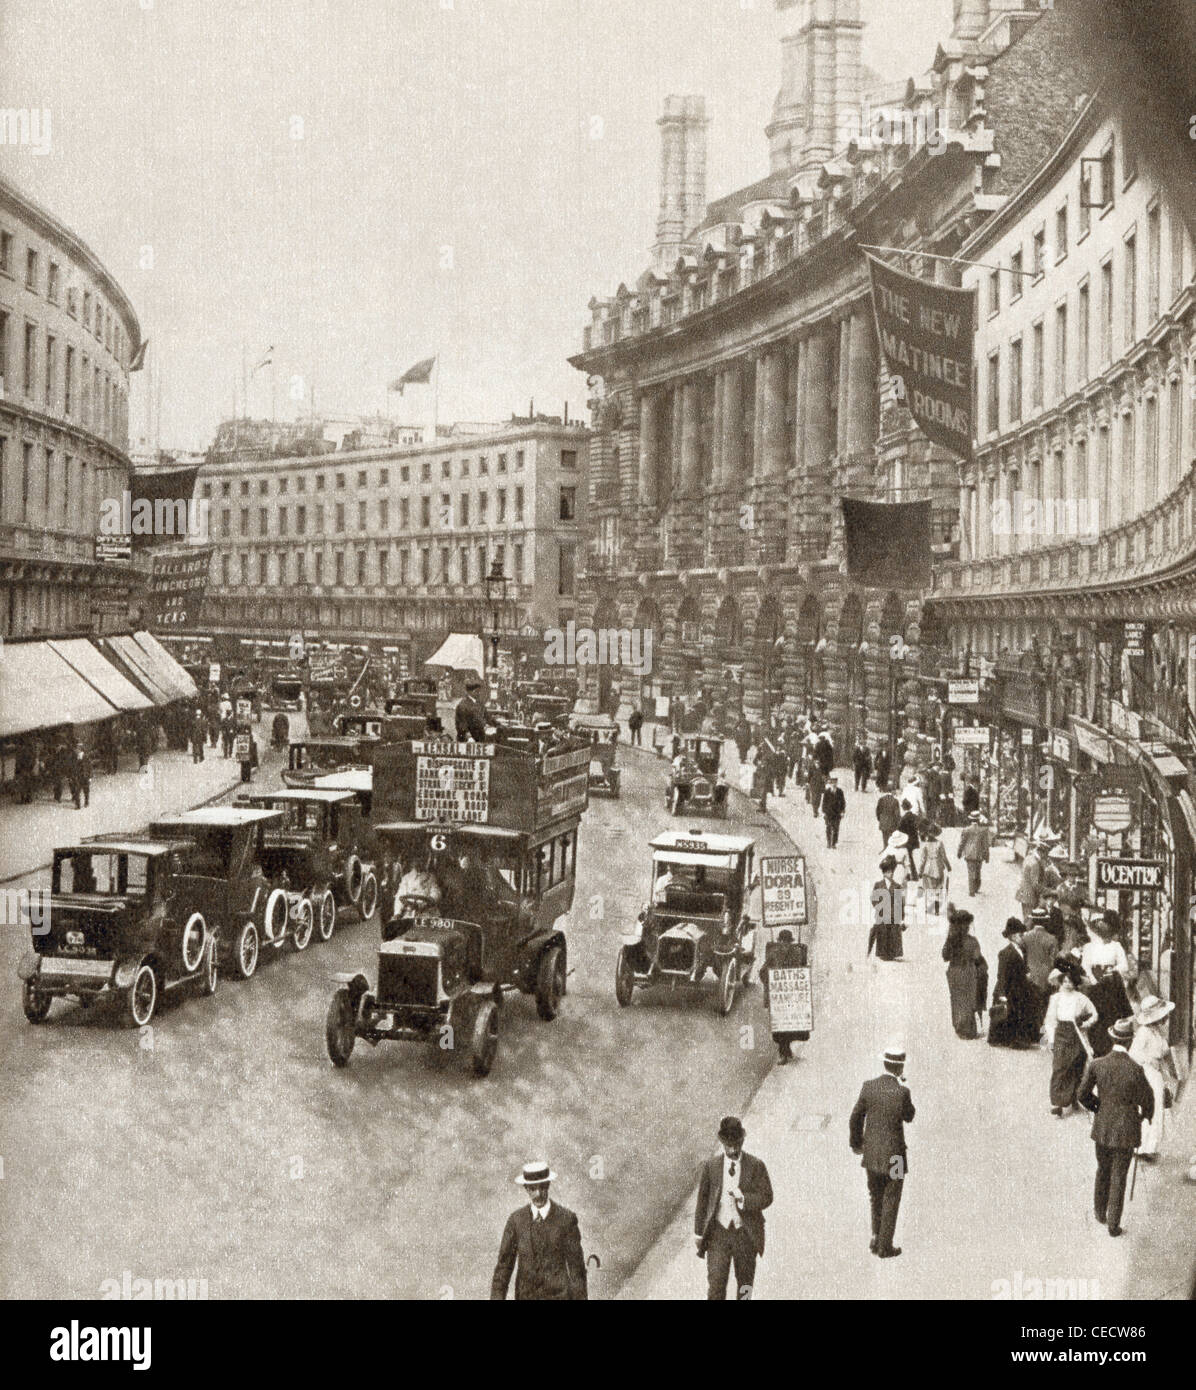 Regent Street, London, England in 1912. From The Story of 25 Eventful Years in Pictures, published 1935. - Stock Image